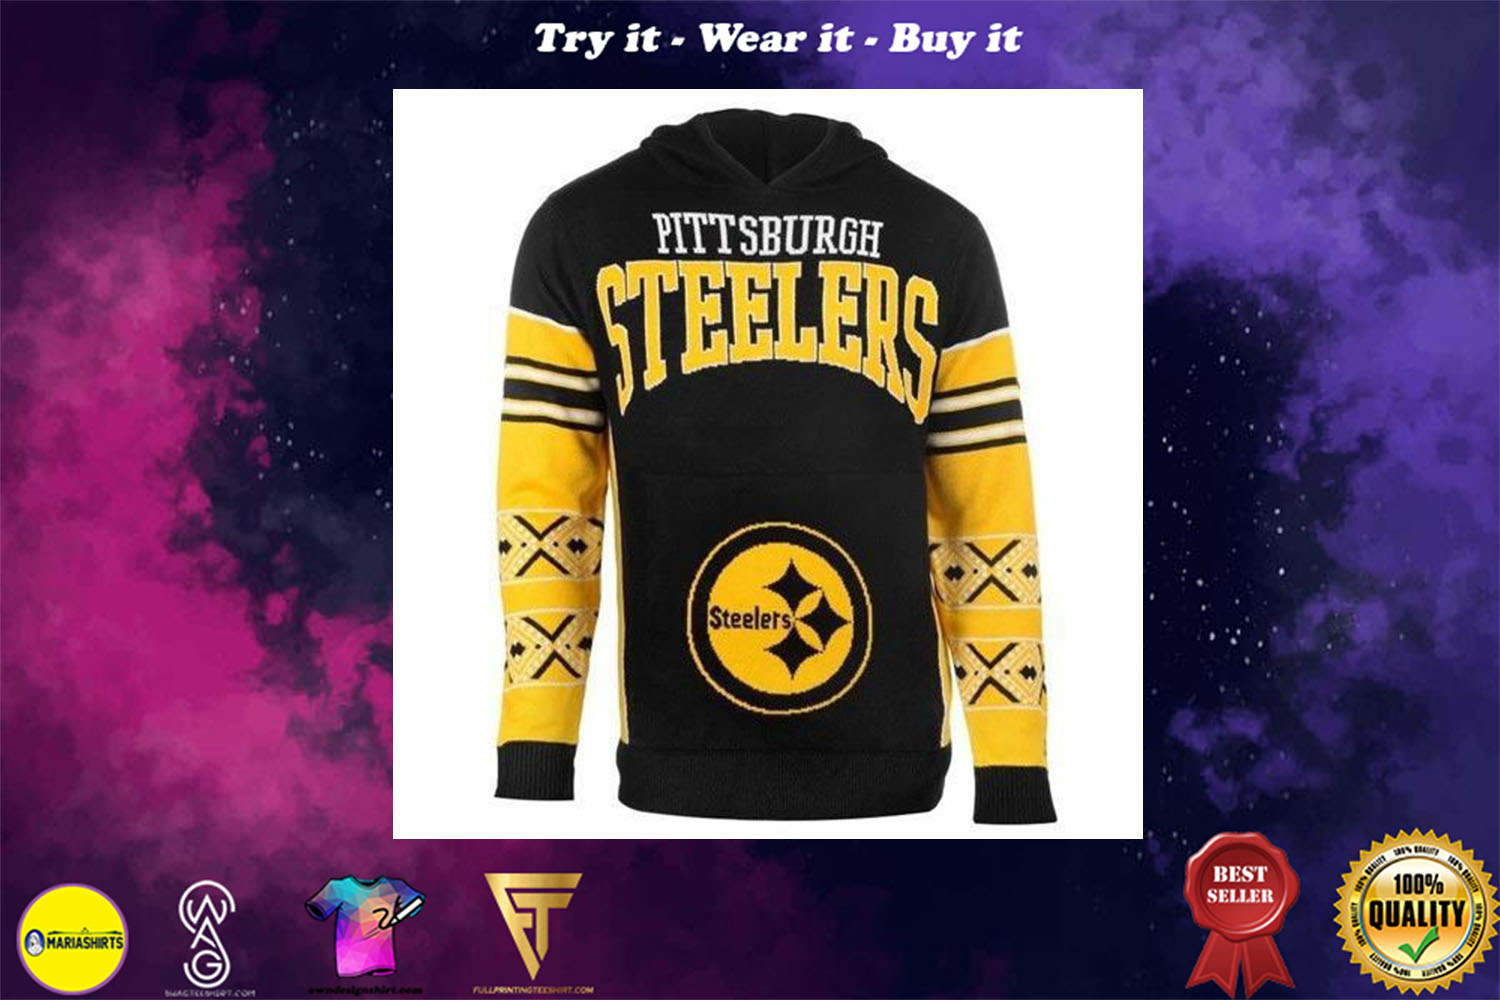 [special edition] the pittsburgh steelers full over print shirt - maria